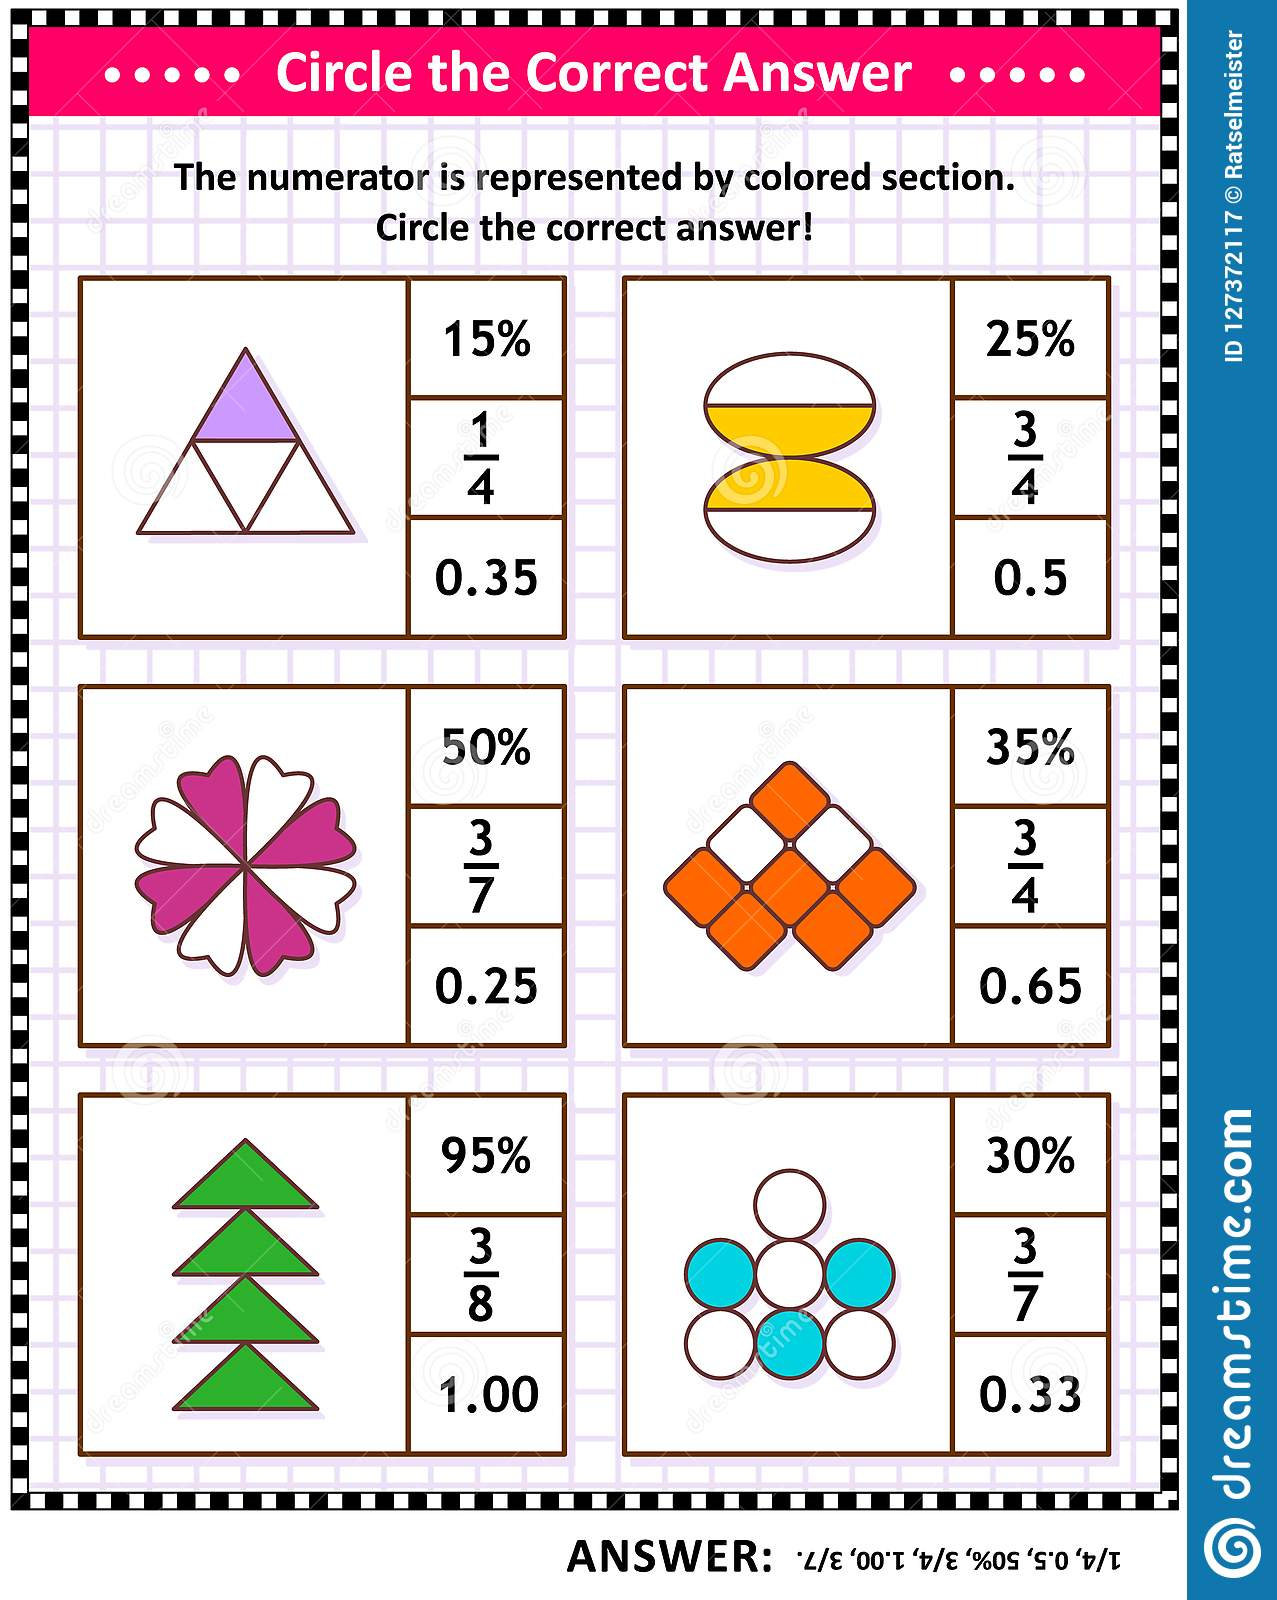 Math Skills Training Puzzle Or Worksheet With Visual Fractions Stock - Worksheet Visual Puzzle